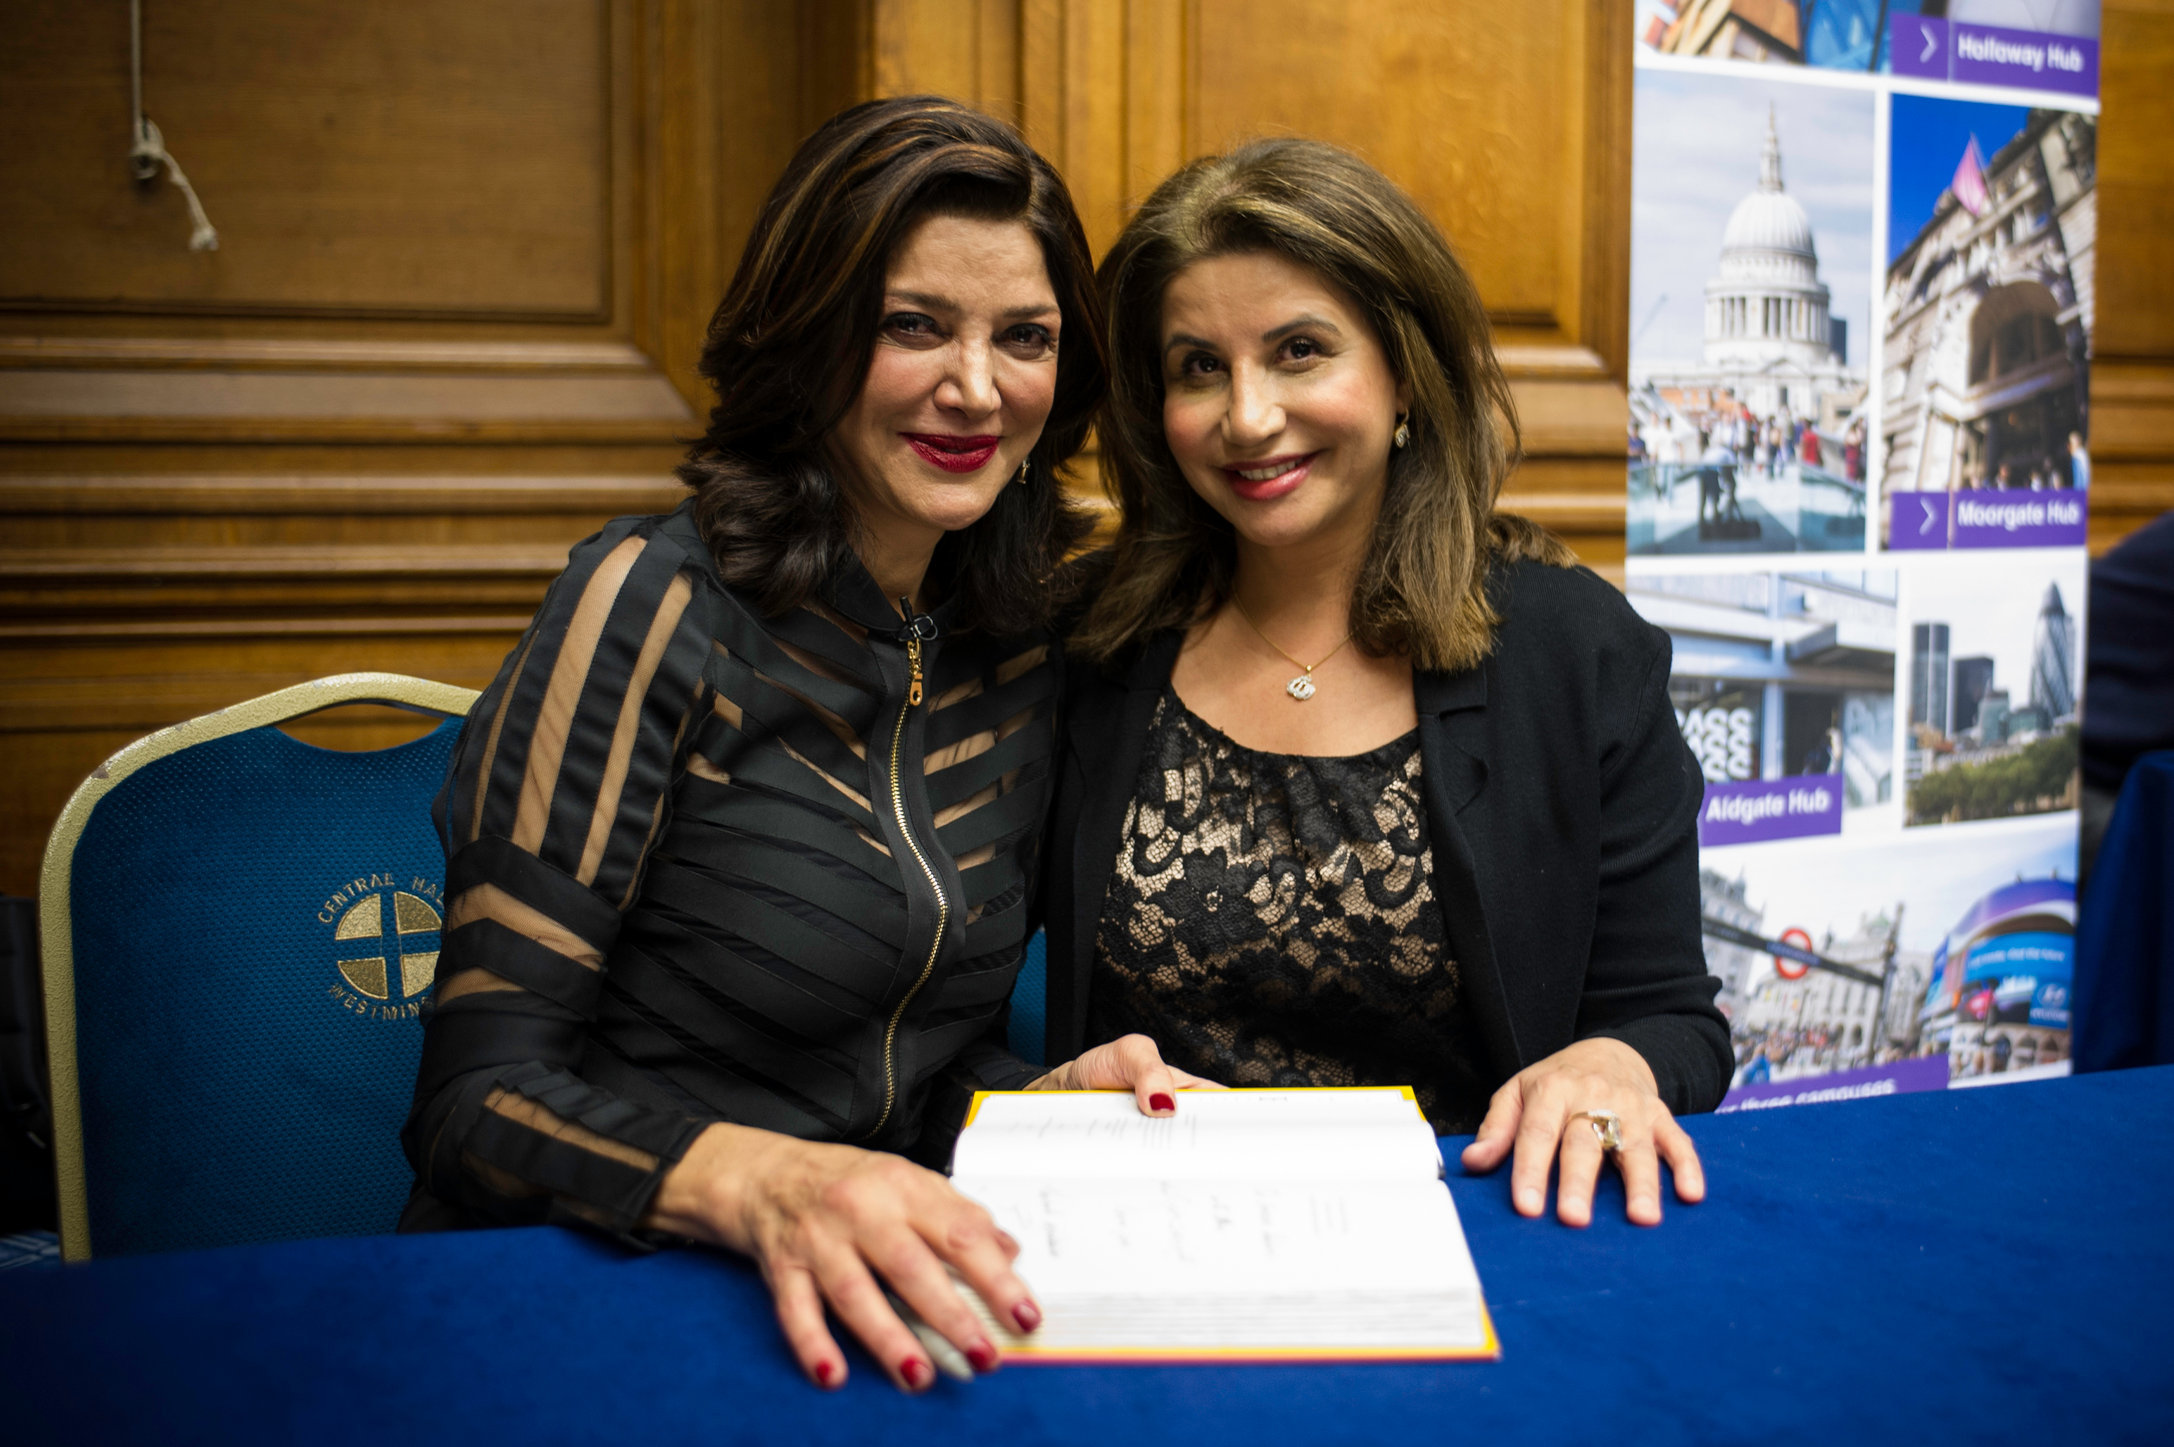 Ludovic_Robert_Photographer_Aneveningwith_Shohreh_Aghdashloo_November_2013-20131129-0412.jpg